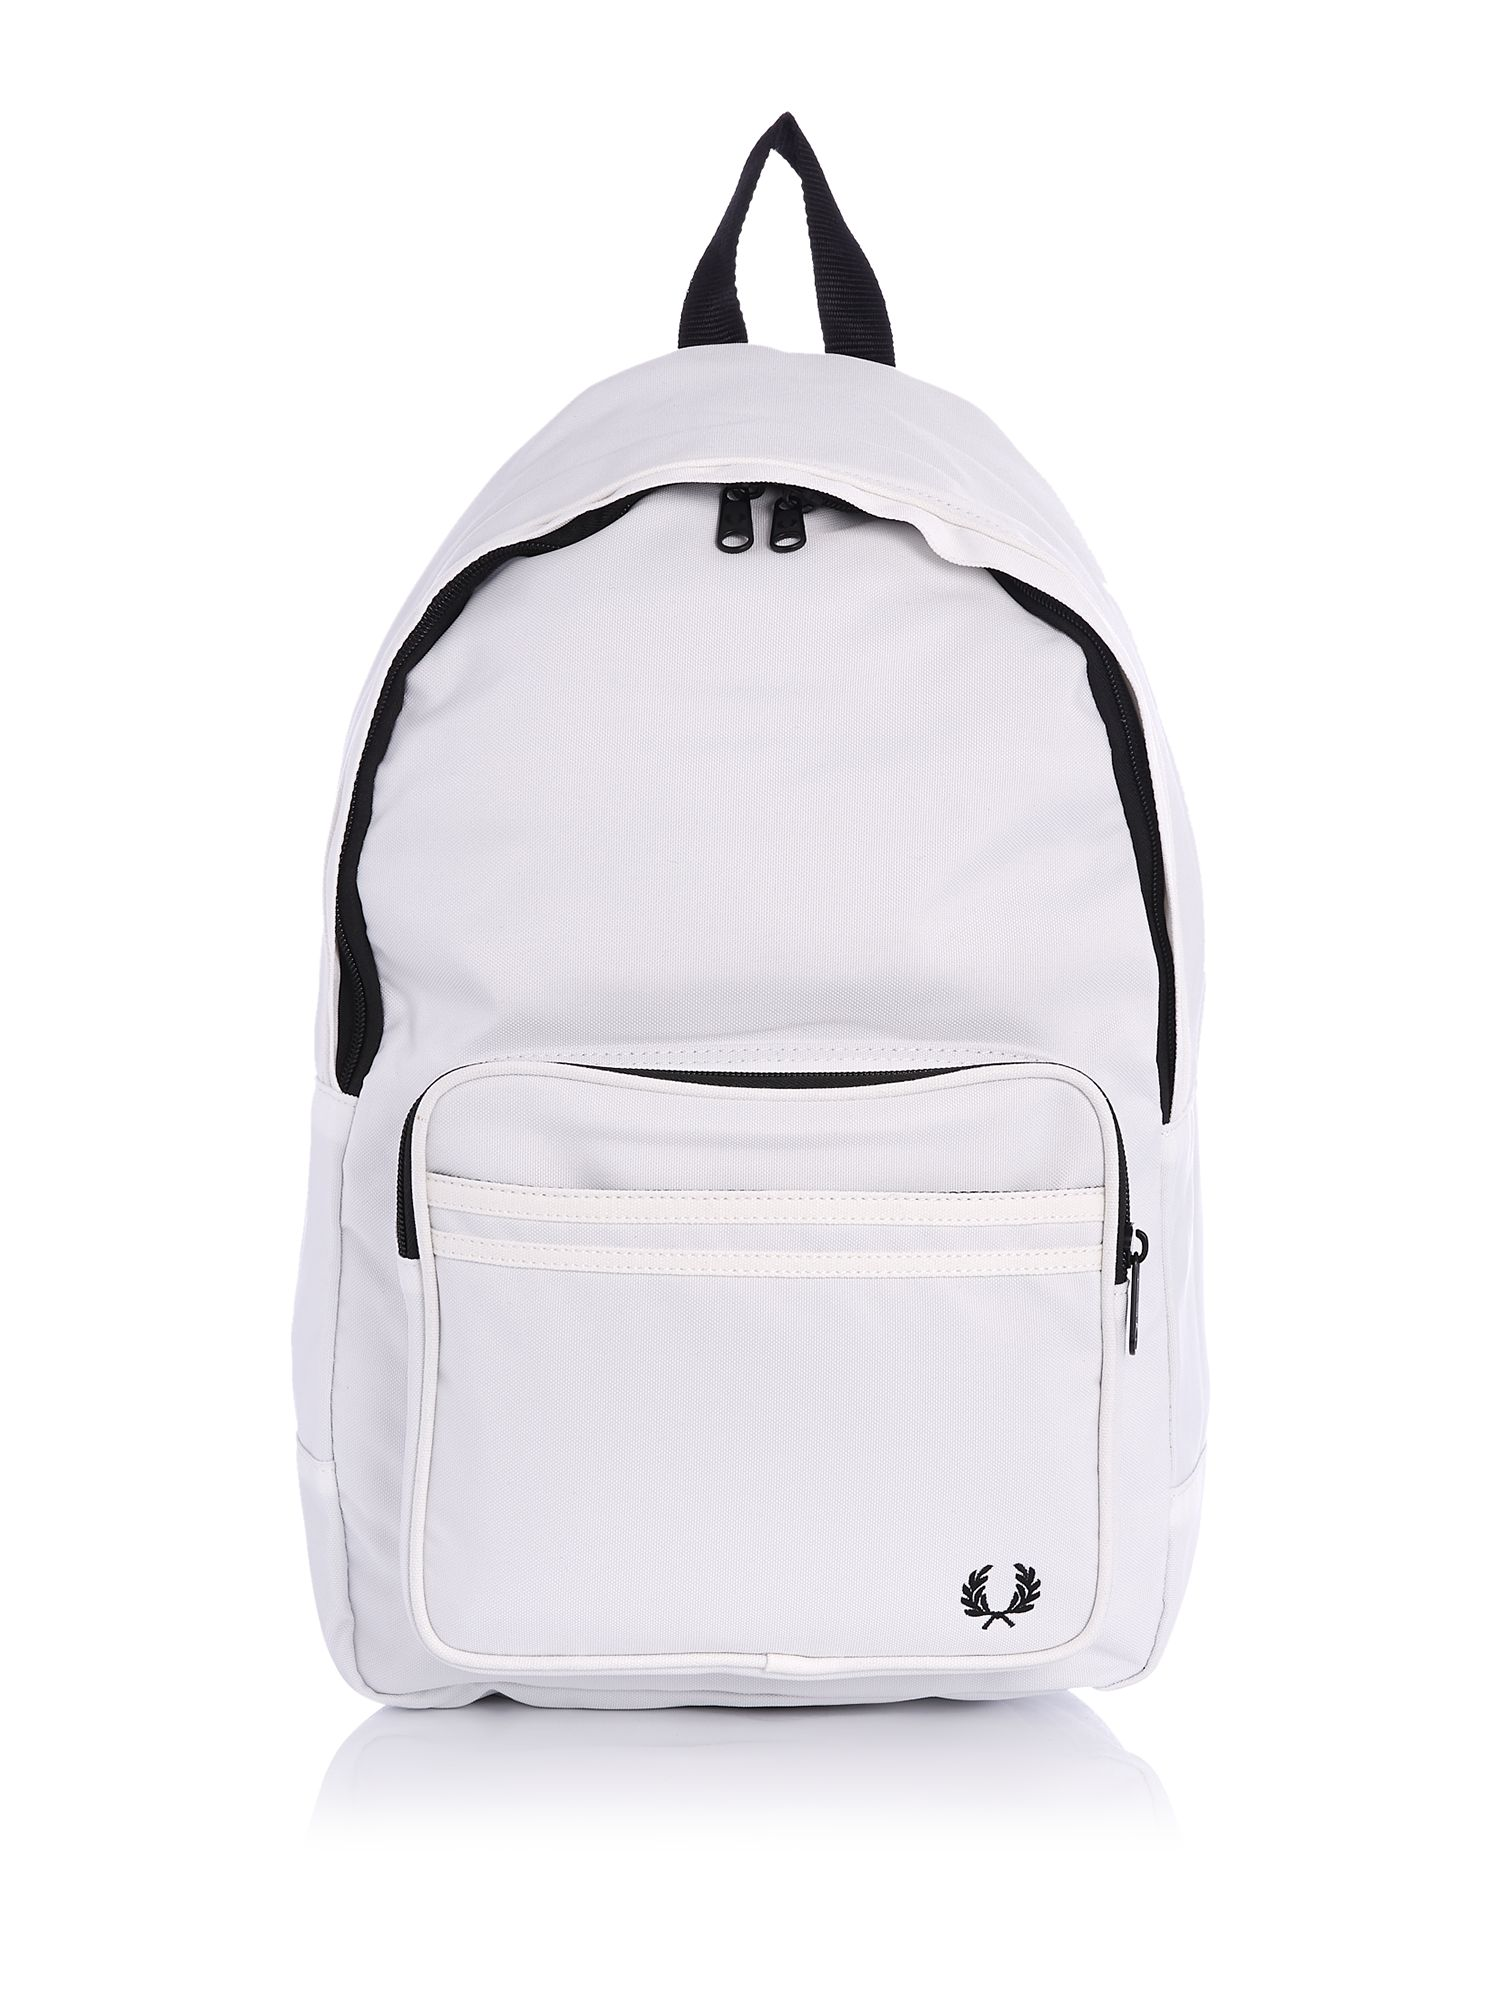 Fred Perry Tipped Backpack, White